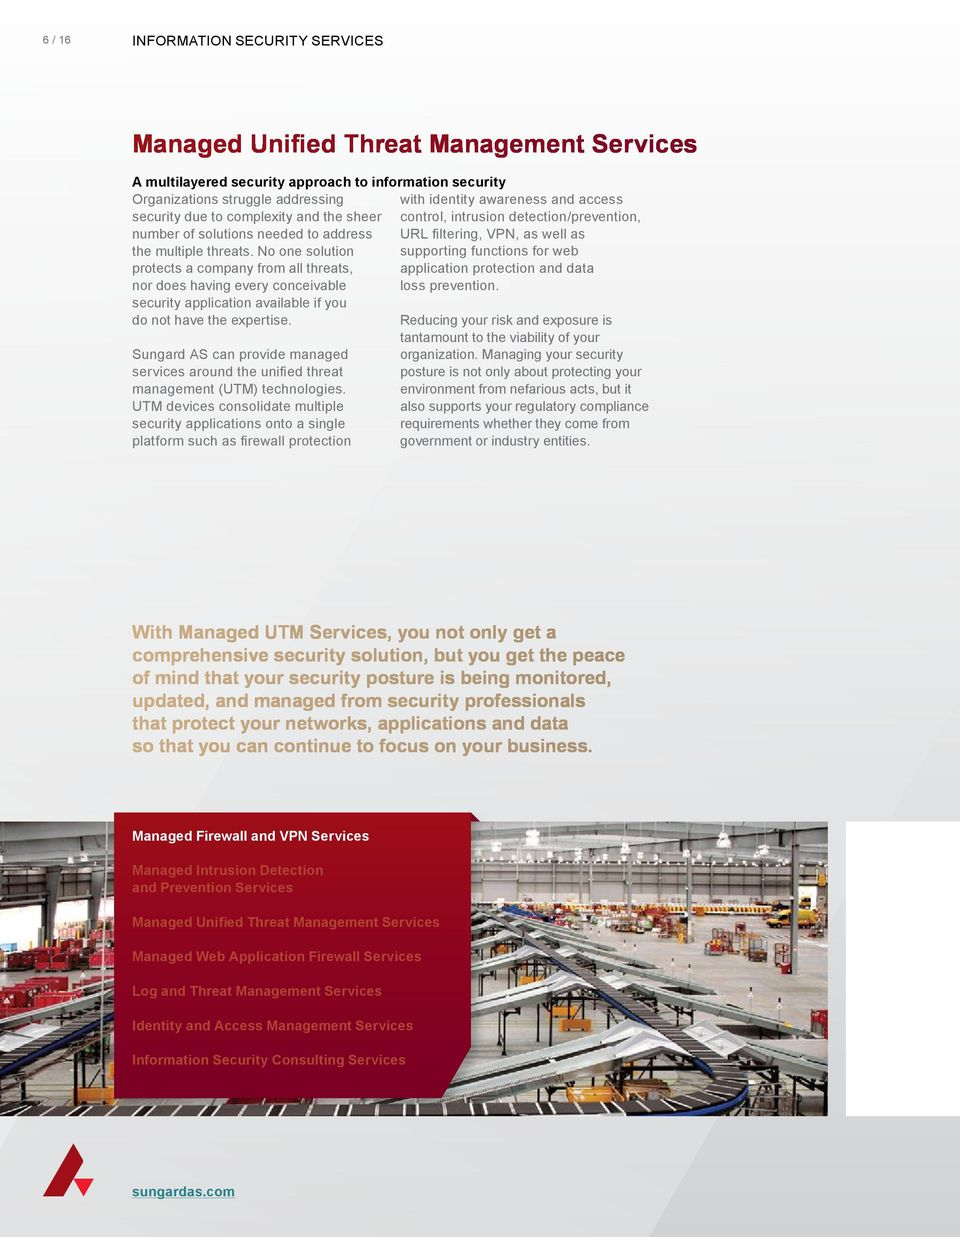 Sungard AS can provide managed services around the unified threat management (UTM) technologies.